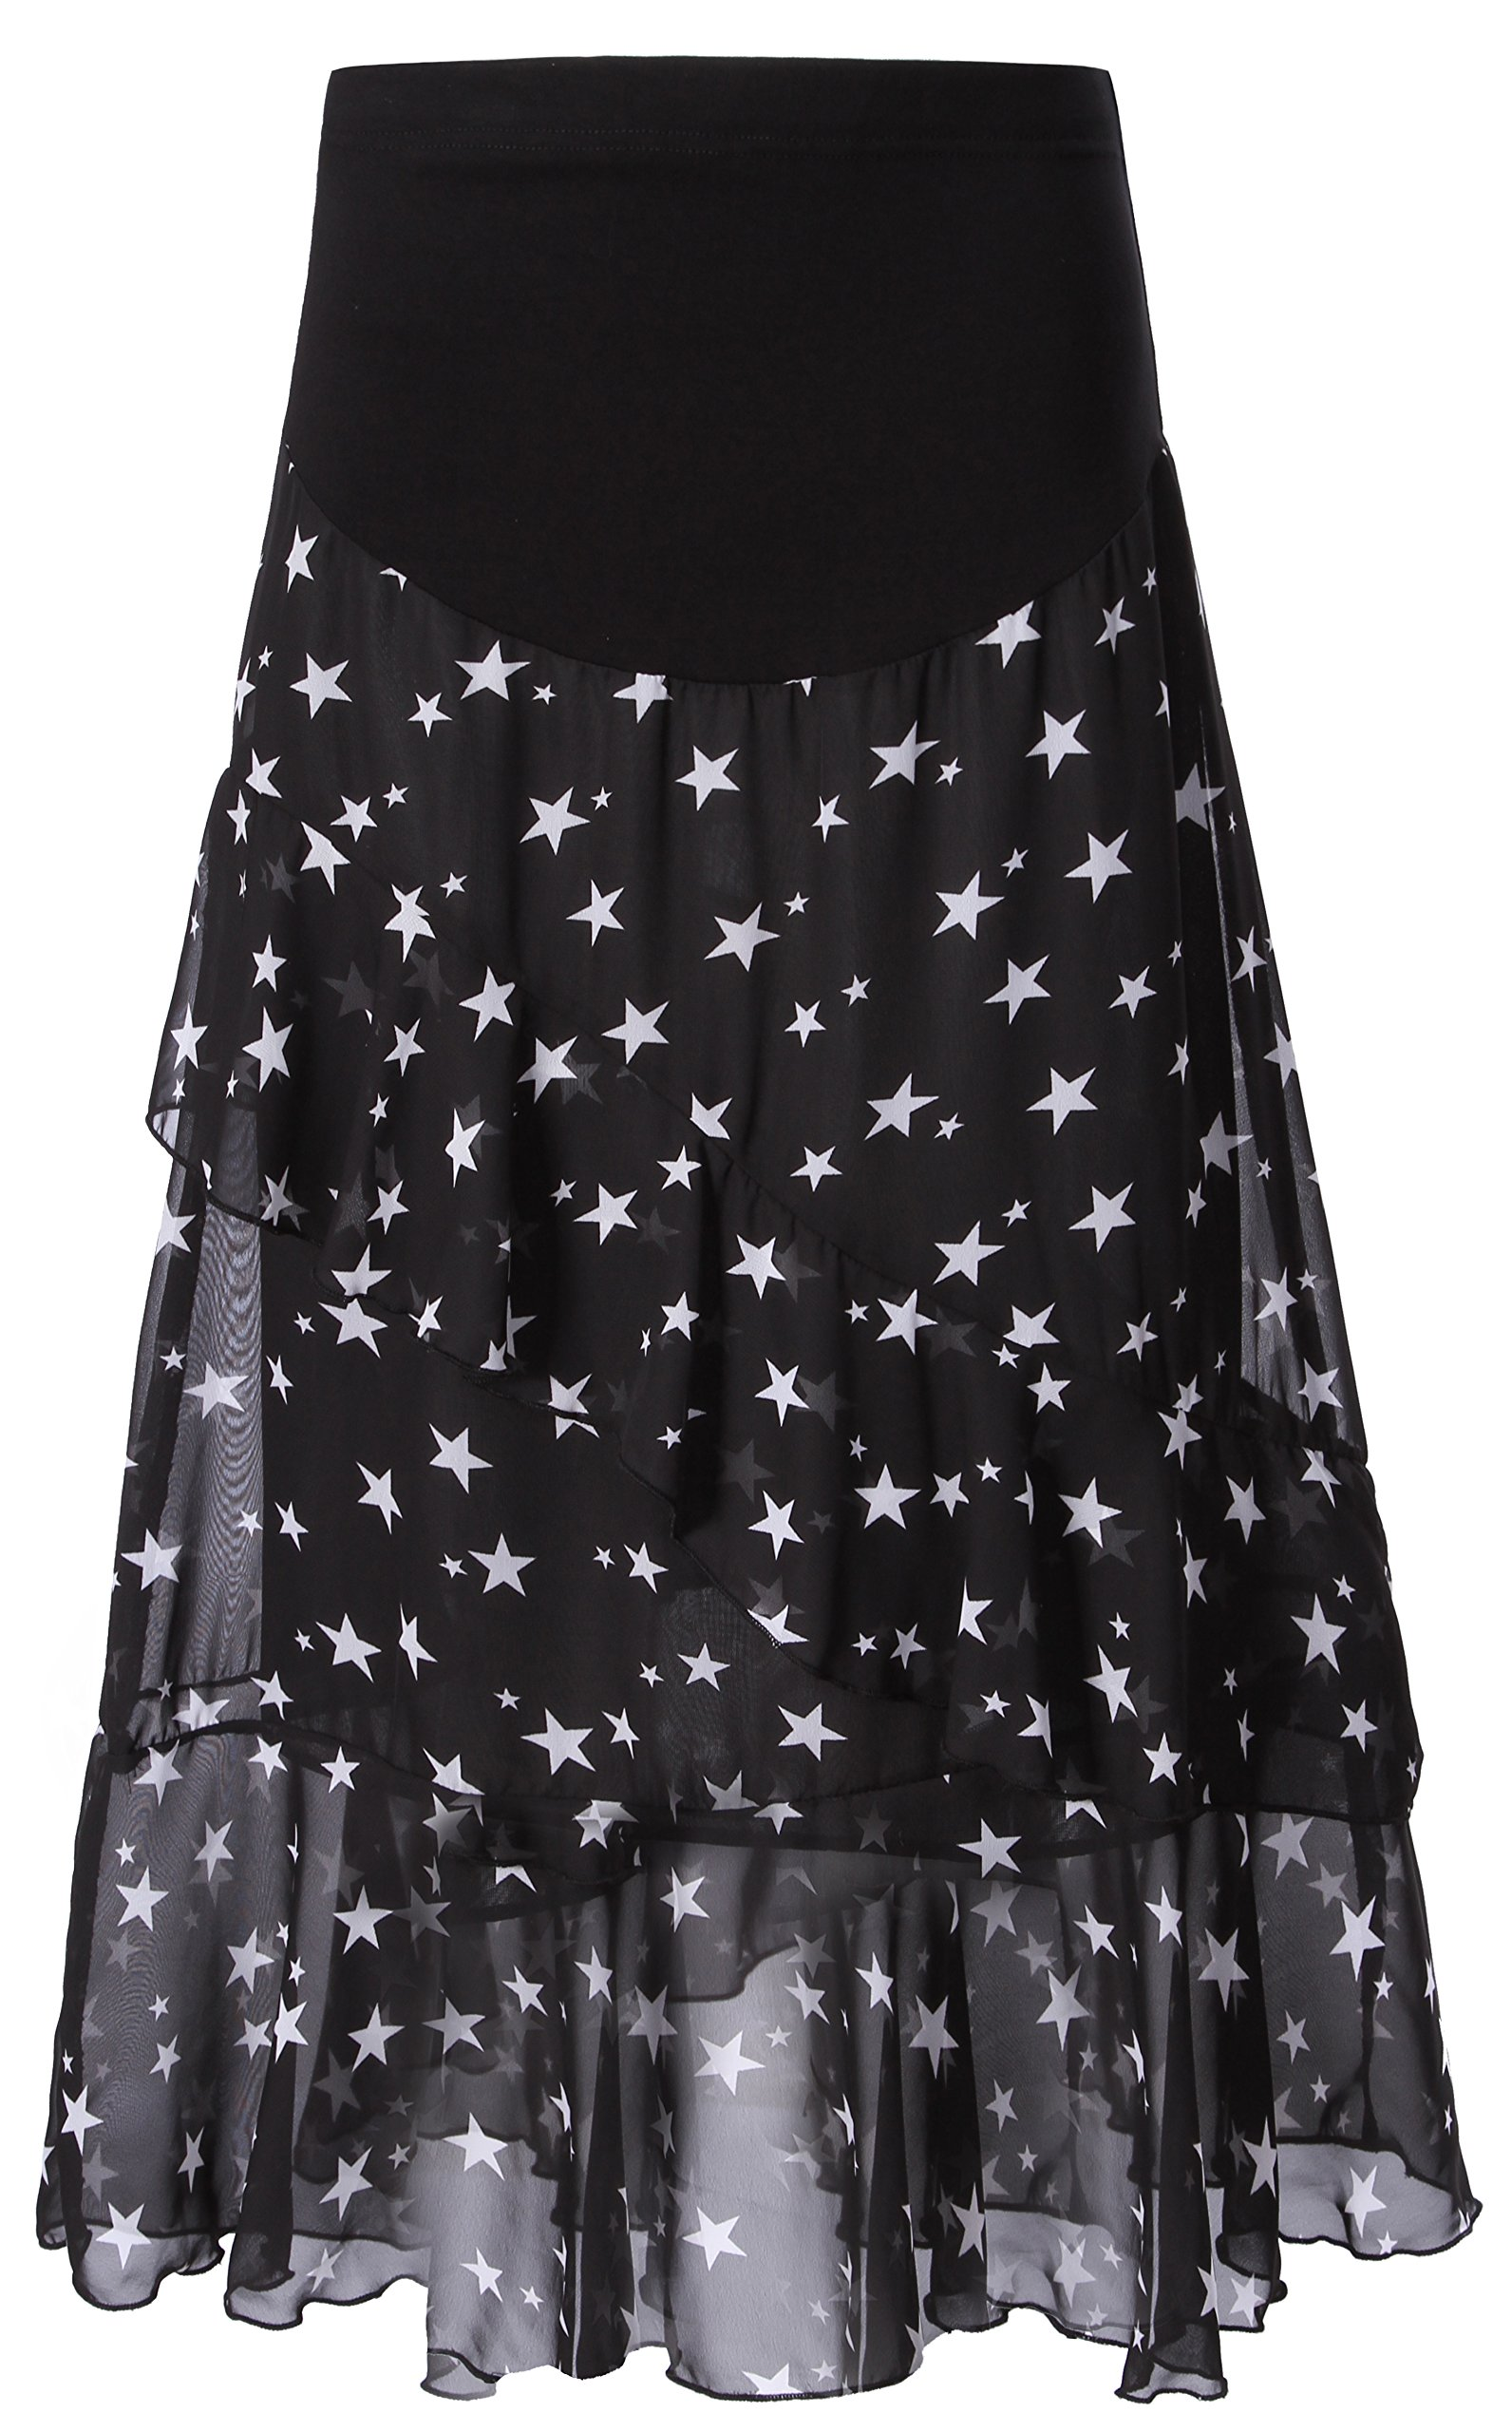 Foucome Over Belly Printed Maternity Skirt High Waist Flowy High Low Chiffon Skirt for Women Black